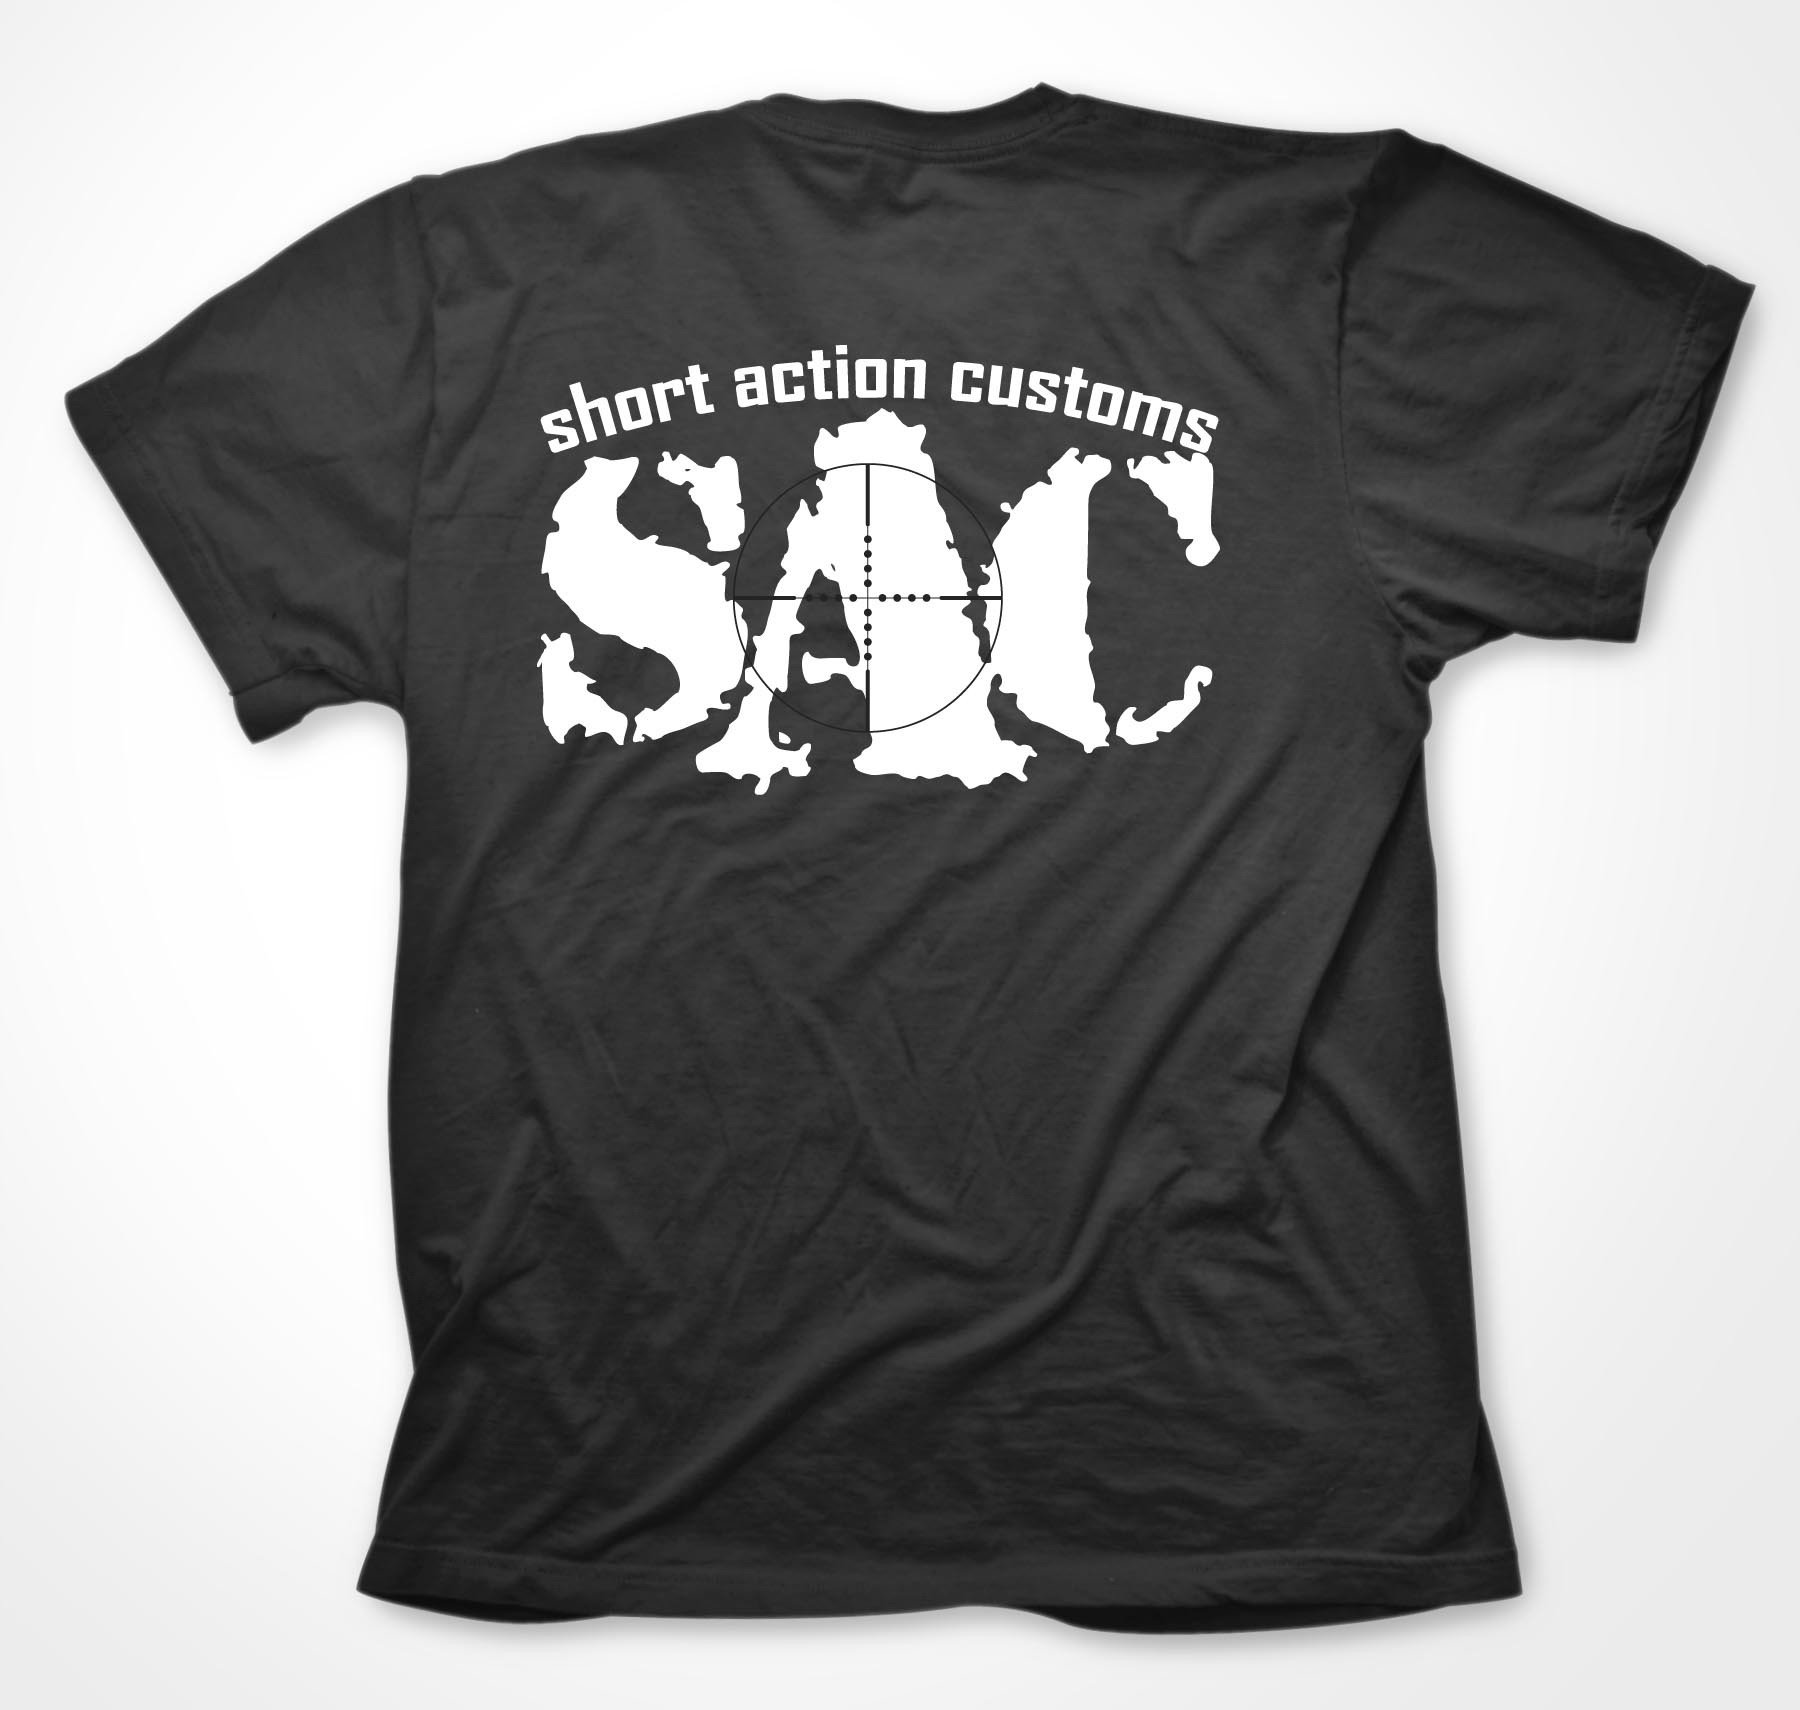 SAC Original Men's T-Shirt in Black